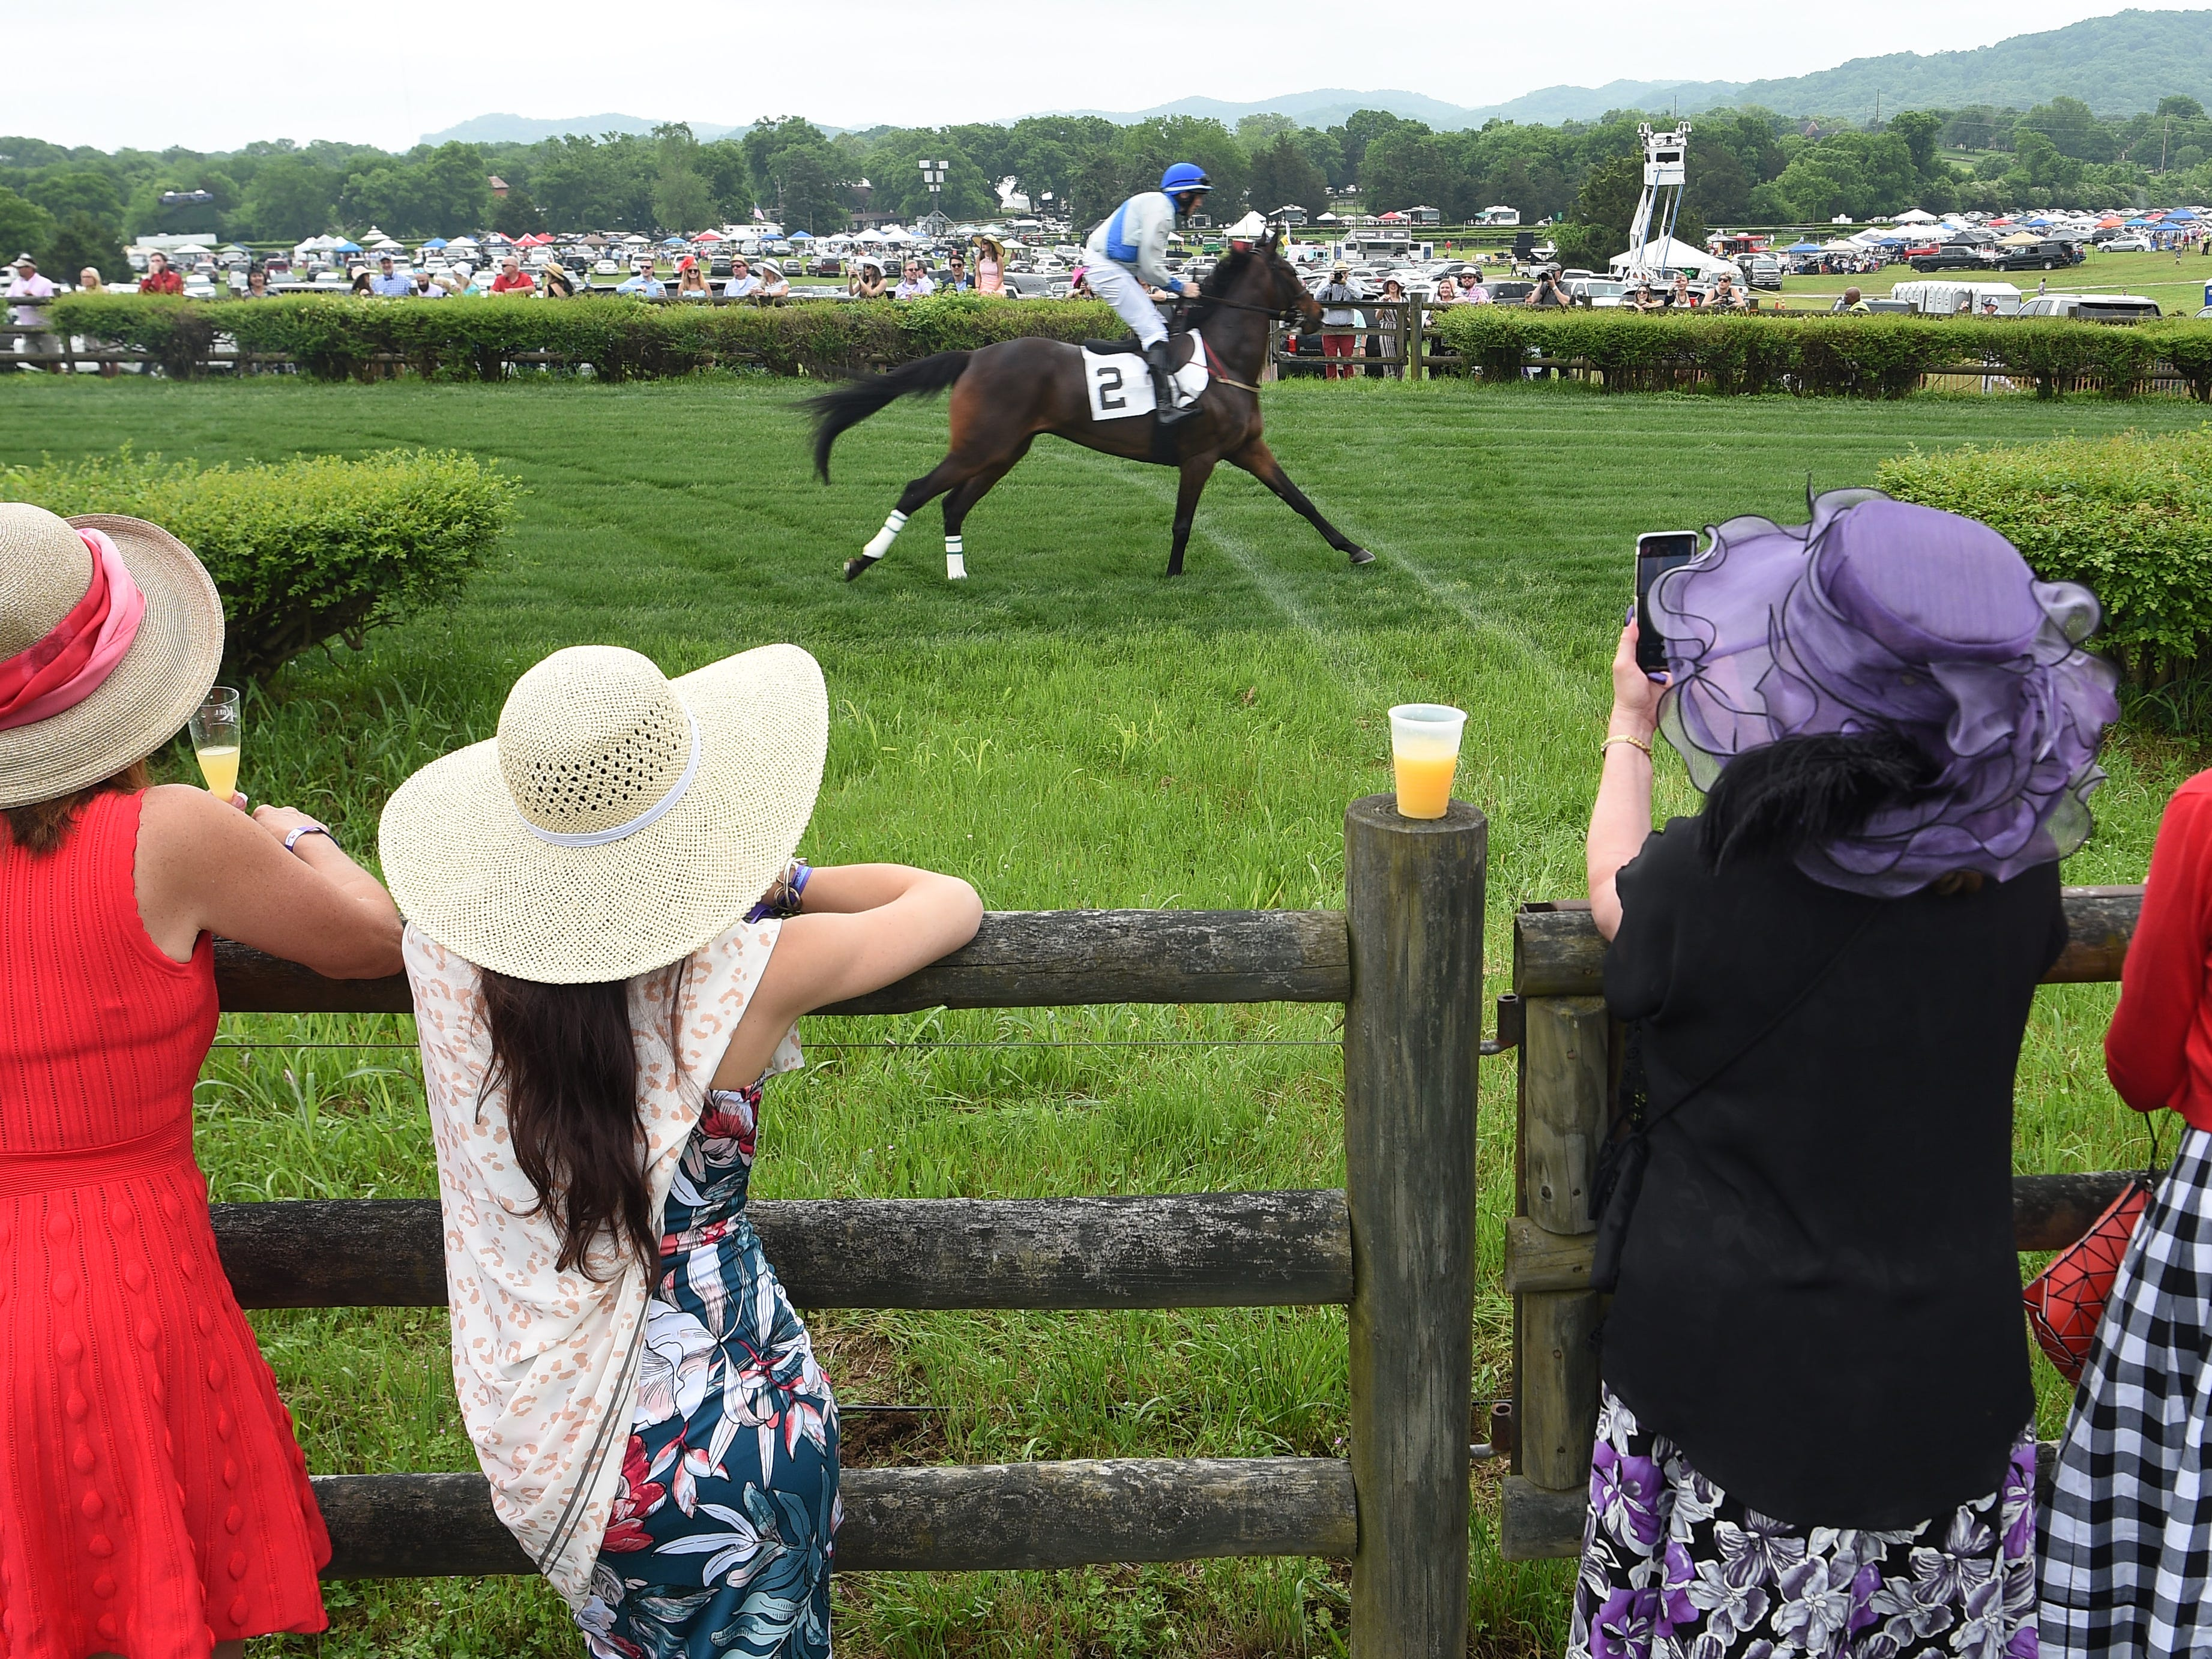 Spectators watch horses warm up for the 78th Iroquois Steeplechase at Percy Warner Park in Nashville on Saturday, May 11, 2019.